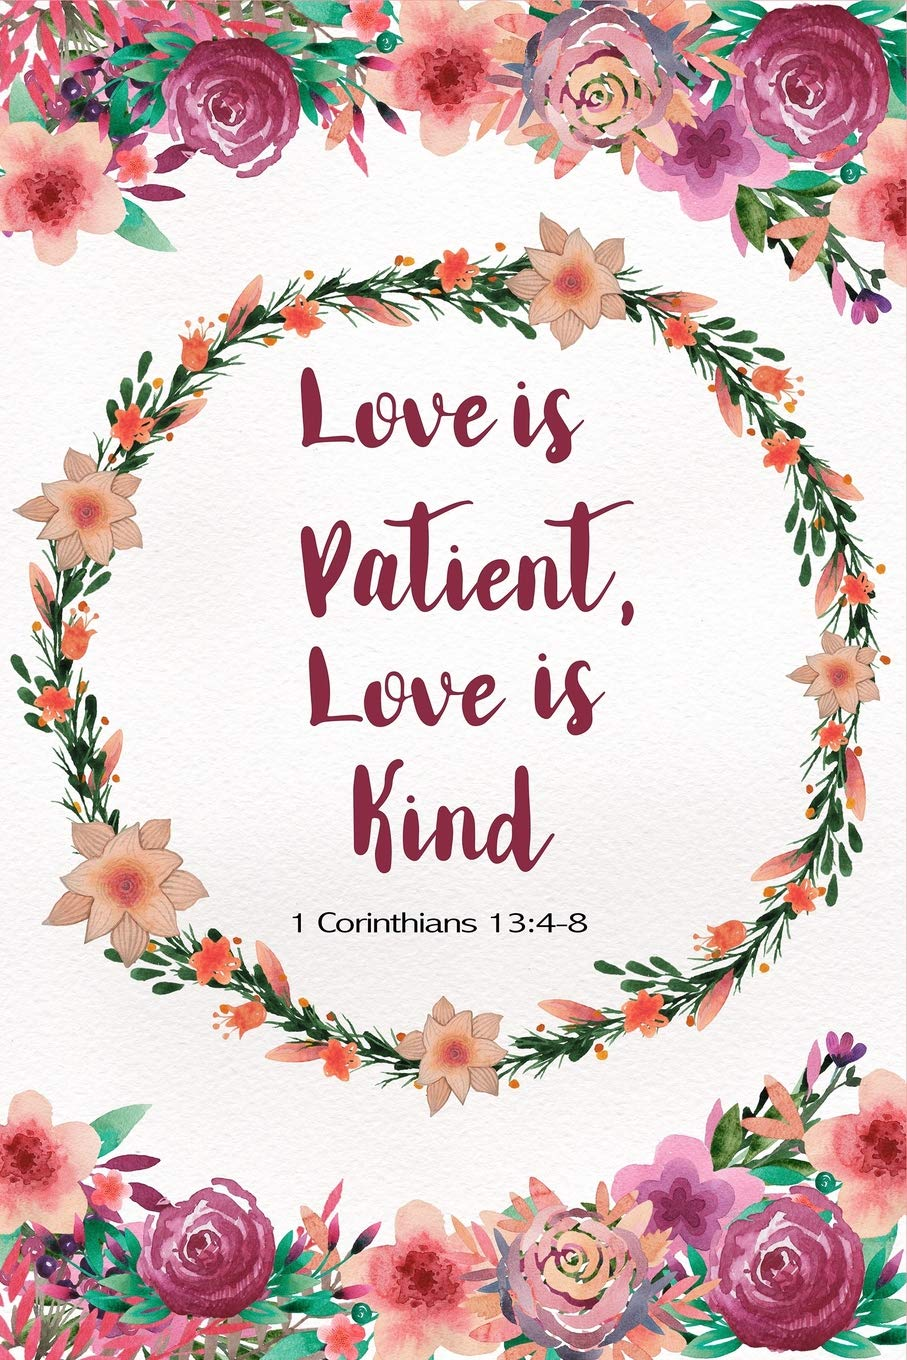 Love is patient love is kind clipart graphic transparent stock Love is Patient Love is Kind - 1 Corinthians 13:4-8: Bible ... graphic transparent stock